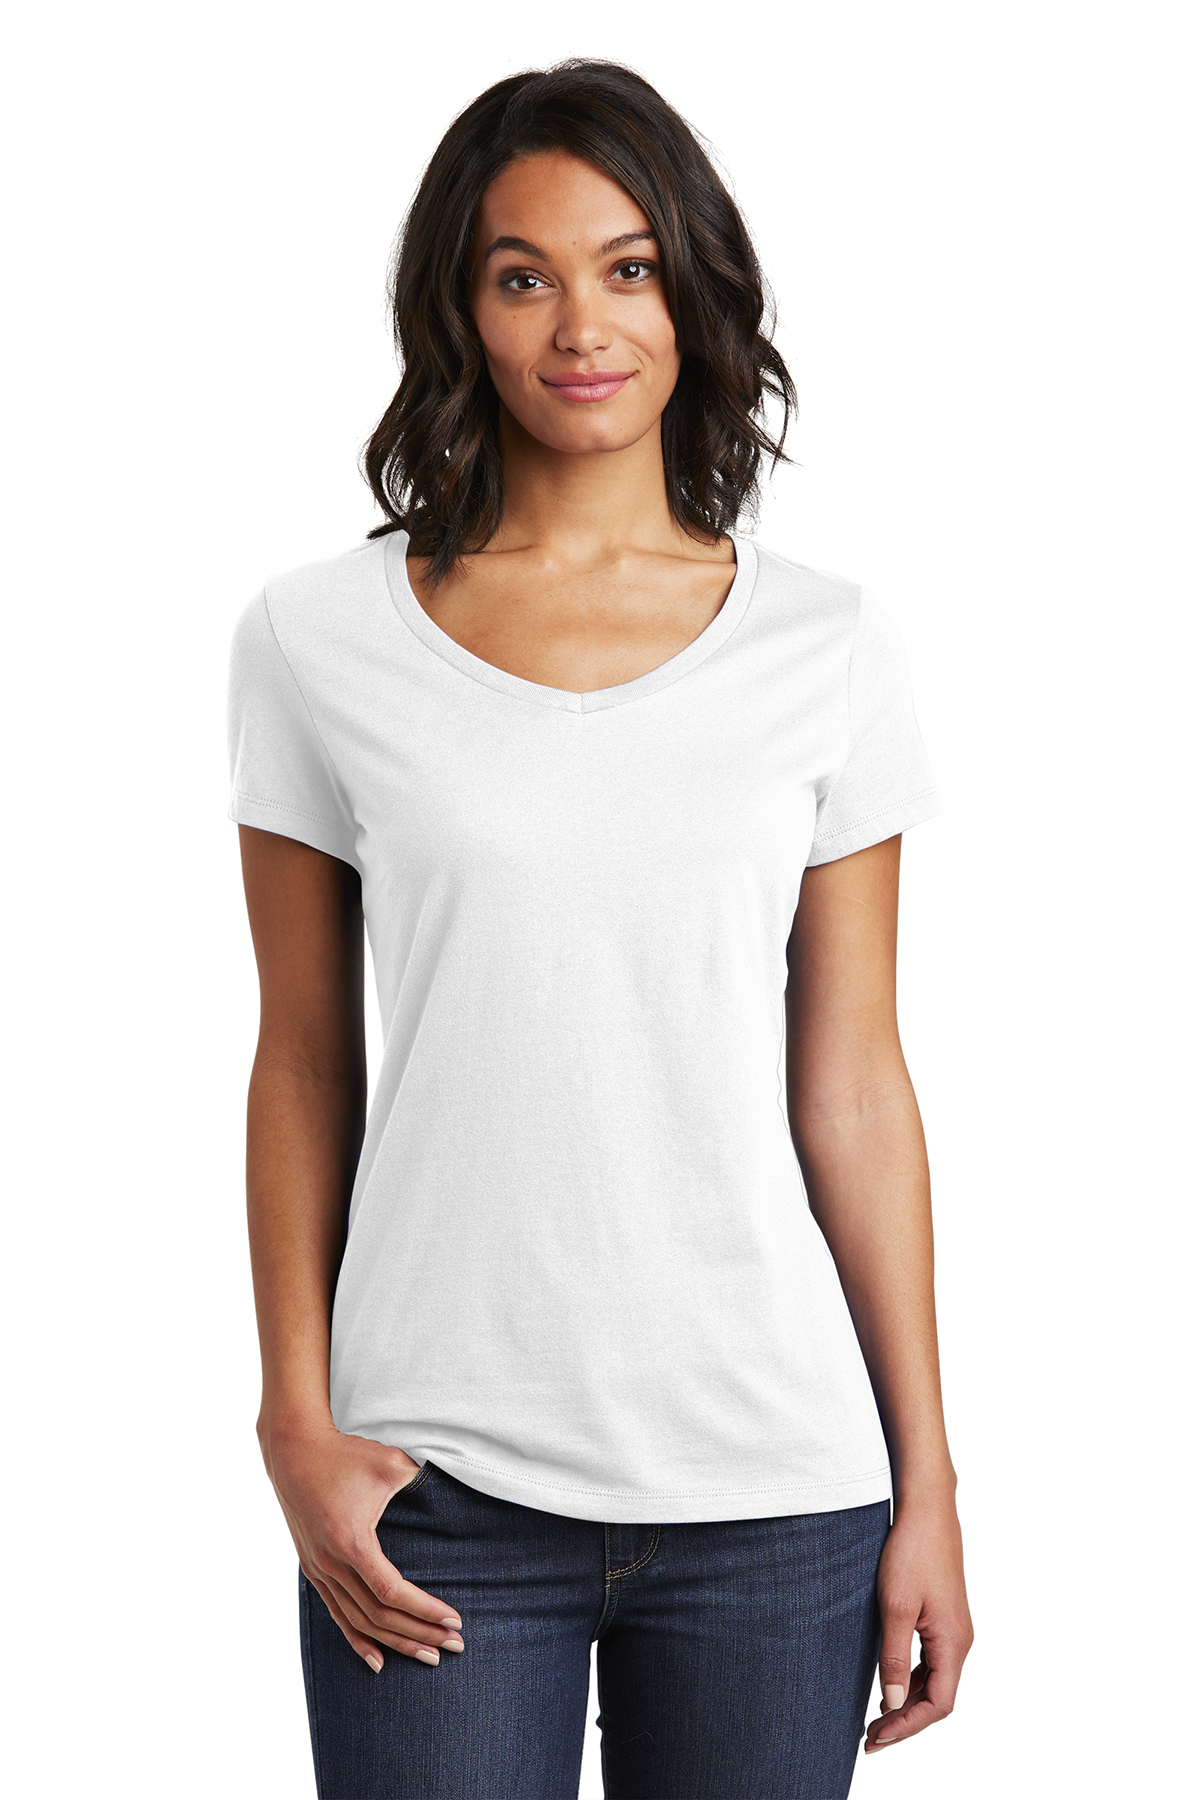 District DT6503 - Women's Very Important Tee V-Neck